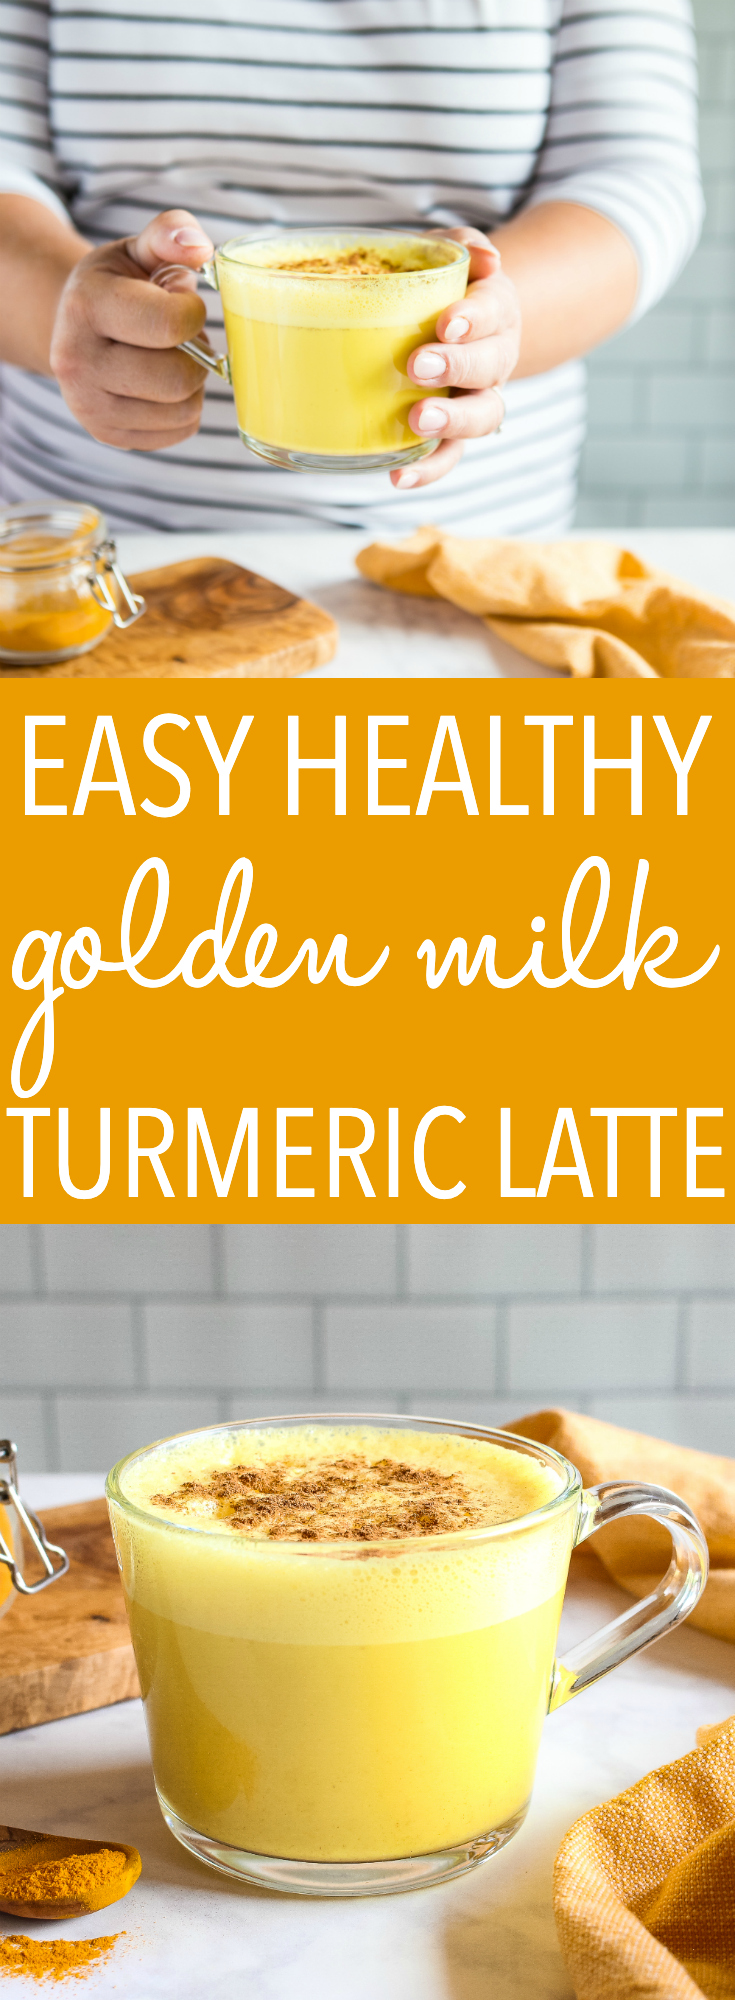 Easy Healthy Golden Milk Turmeric Latte Pinterest